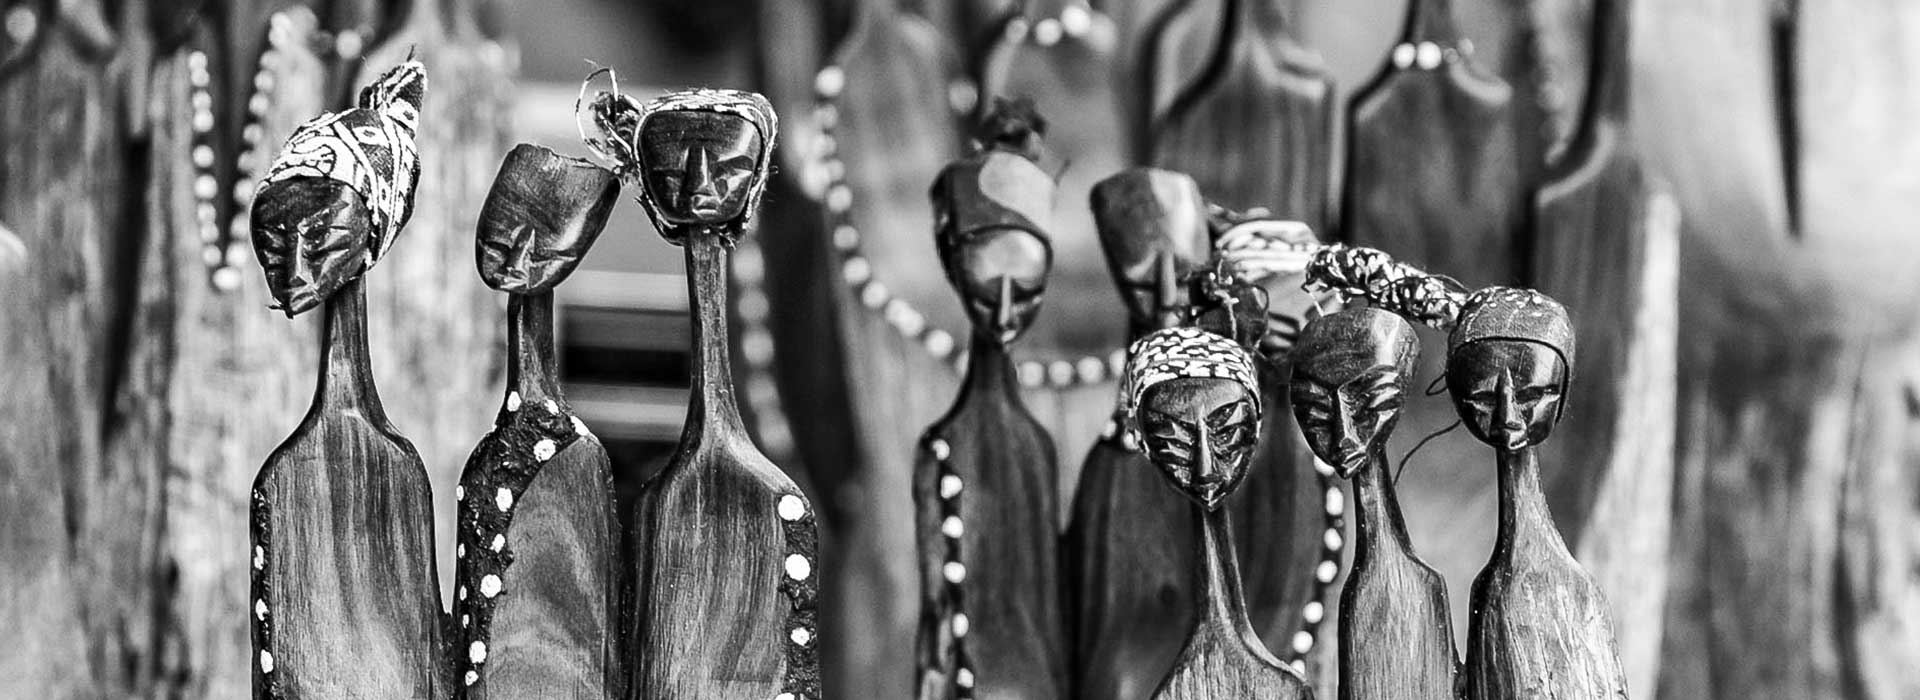 A collection of African wooden sculptures